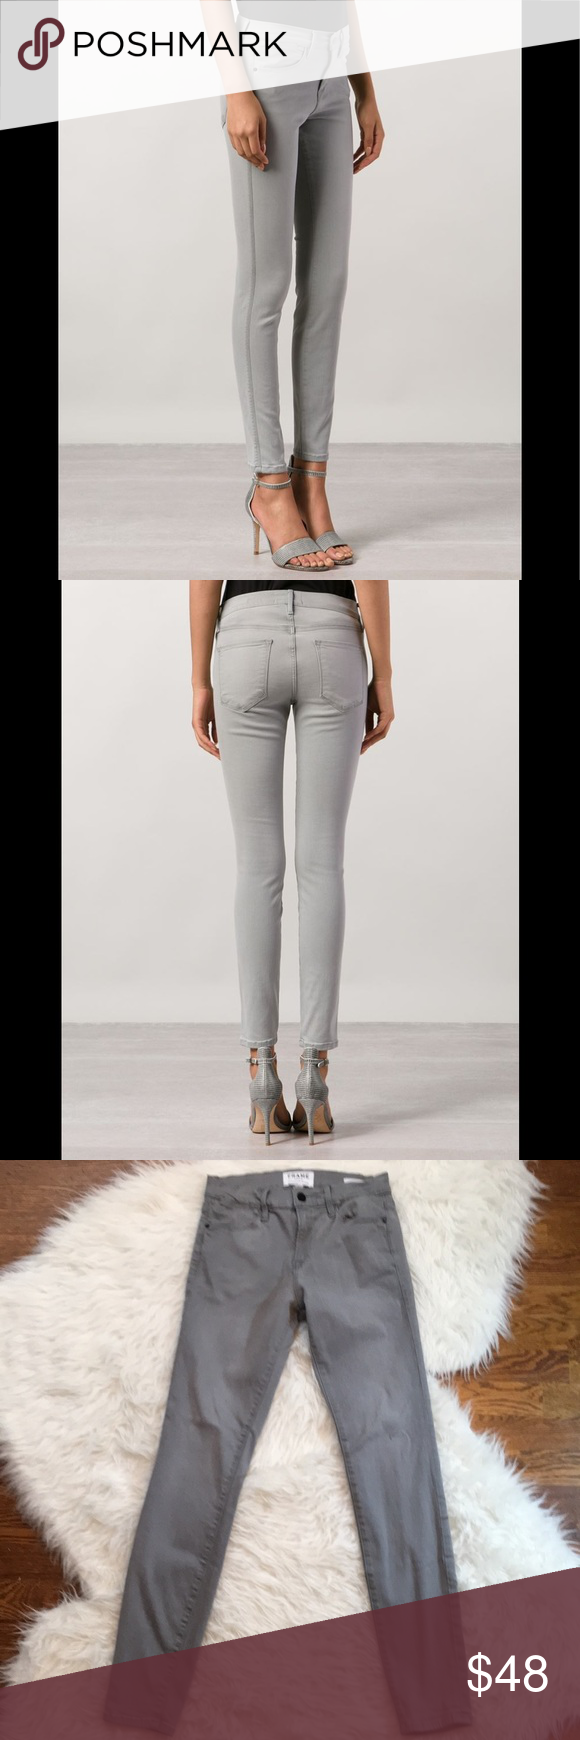 """Frame Le High Skinny Jeans in Grey Frame Le High Skinny jeans in very good condition. Versatile light grey color. The classic '70s high rise inspires these essential jeans modernized in a super-skinny ankle-length cut. Sits above waist. Slim through hips & thigh. Traditional 5-pocket styling. Zip fly with button closure. Rise is about 9,"""" inseam is approximately 28."""" 50% modal, 41.5% cotton, 6% polyester, 2.5% Elastane. Size 26. Frame Denim Jeans Skinny"""